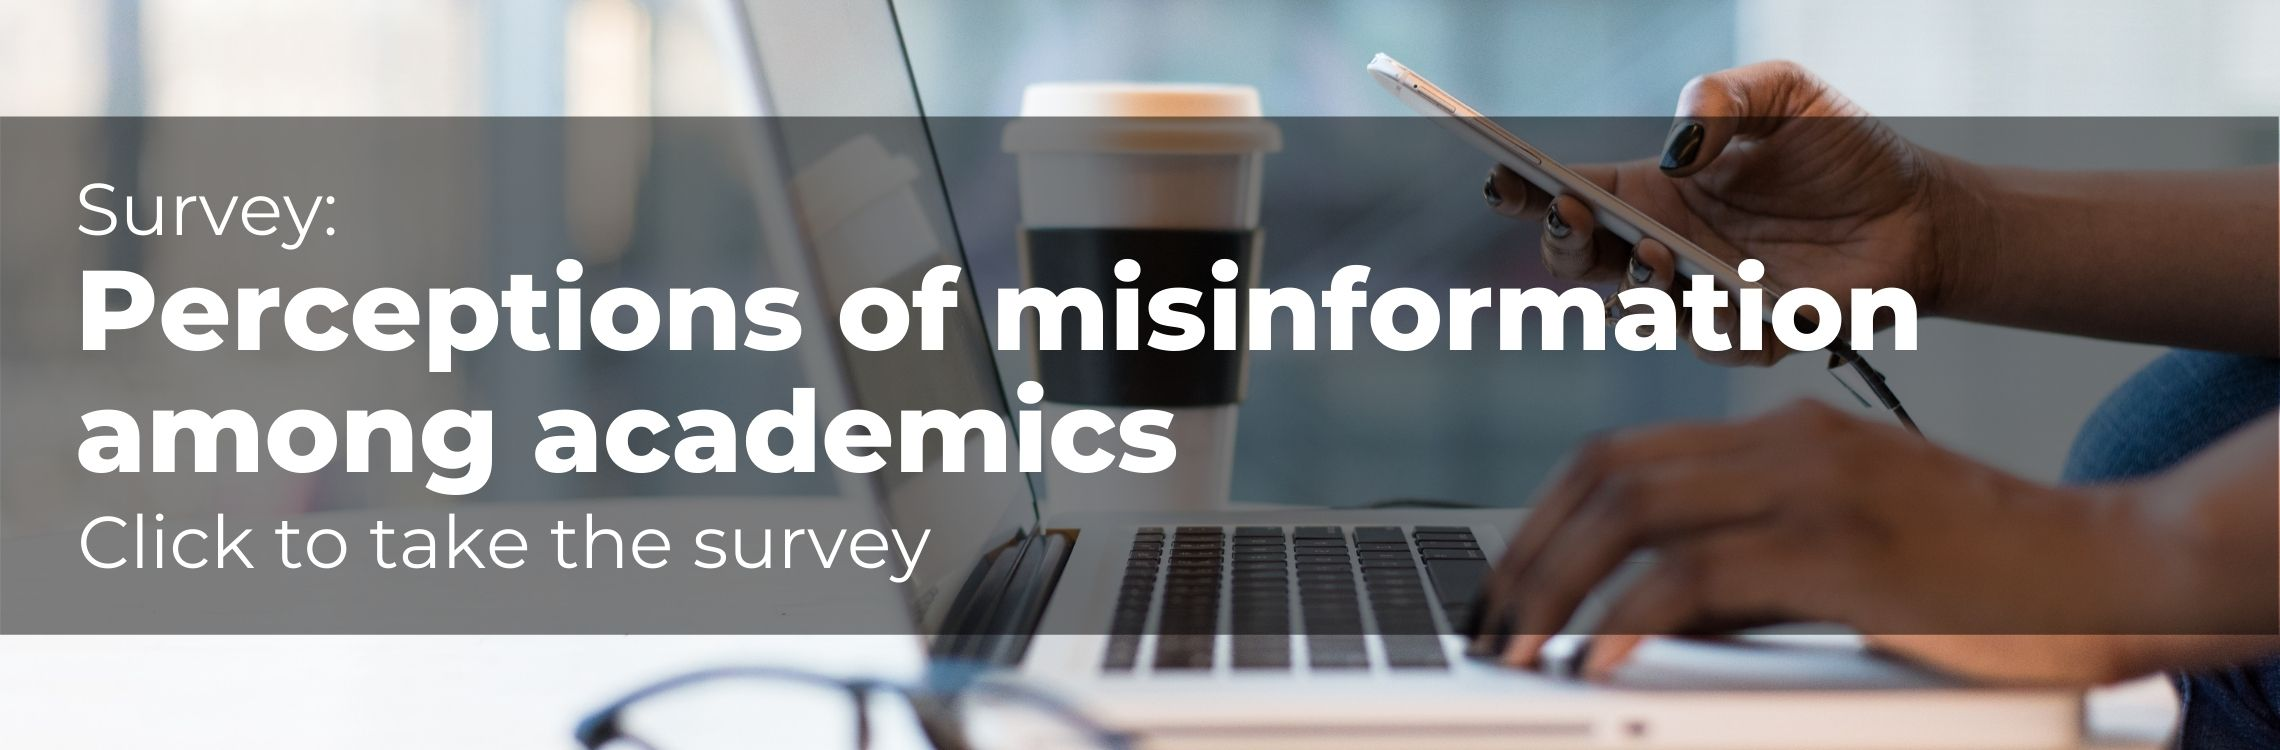 Survey: Perceptions of misinformation among academics, click to take the survey